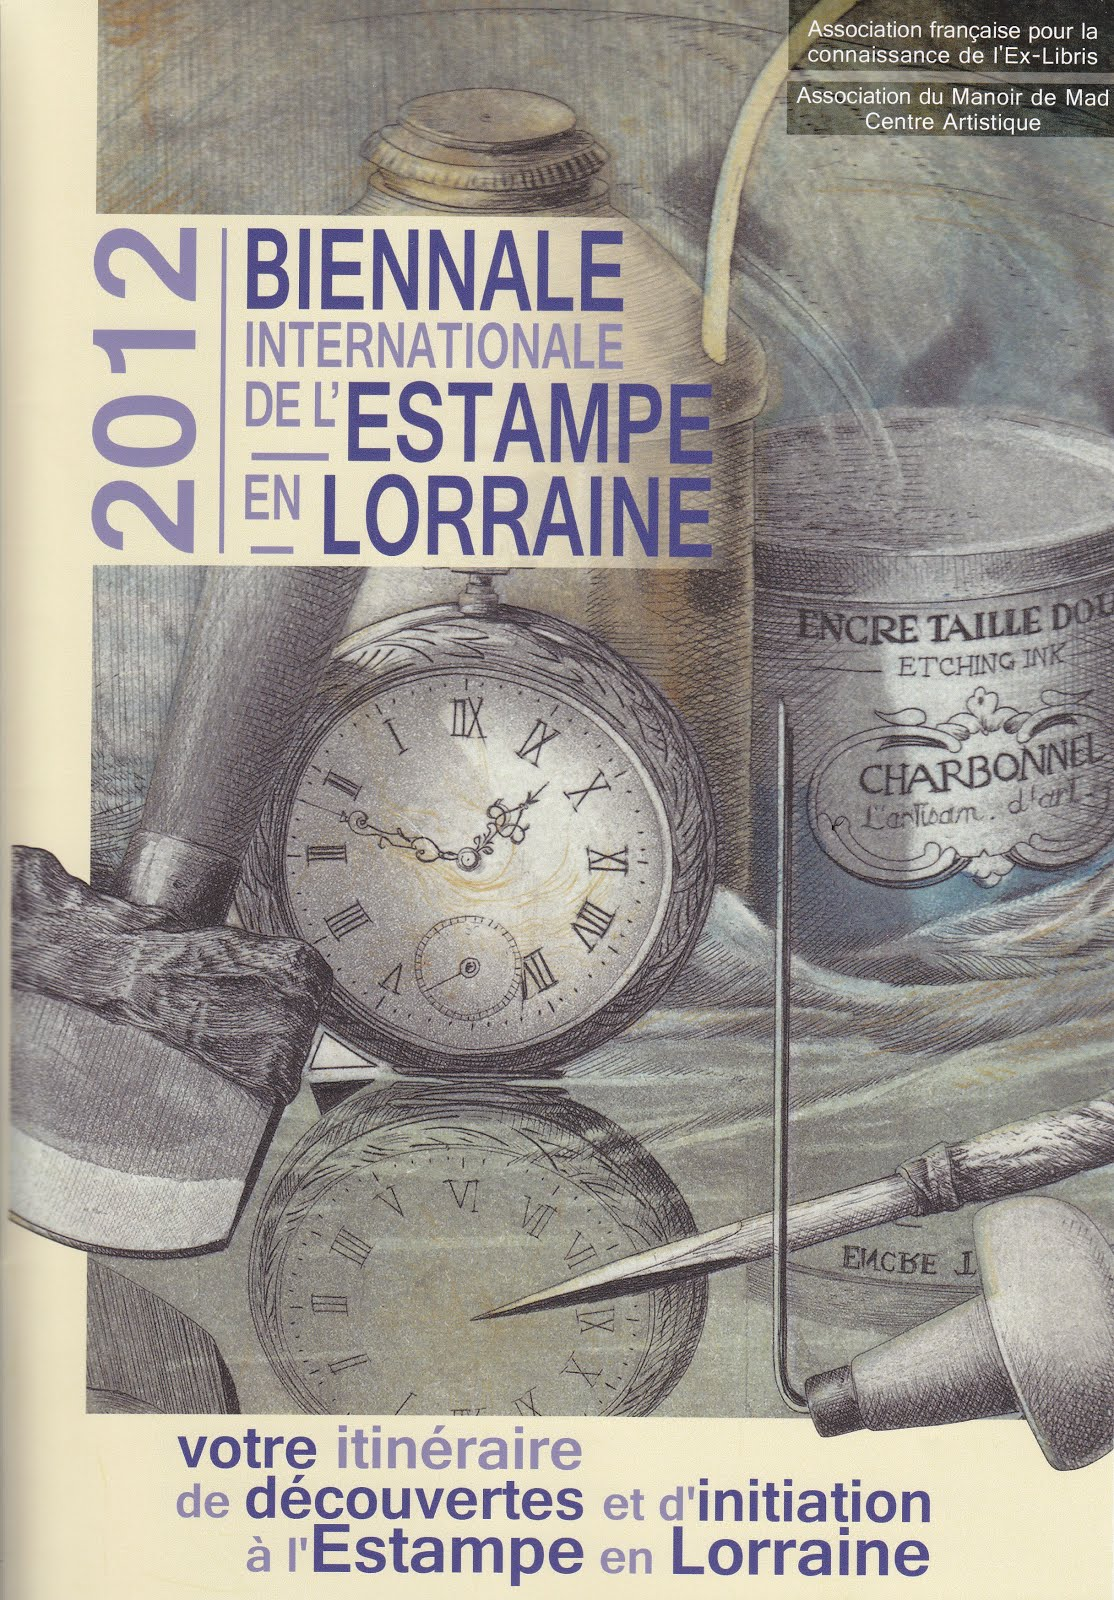 Biennale Internationale de l'Estampe en Lorraine (BIEL)